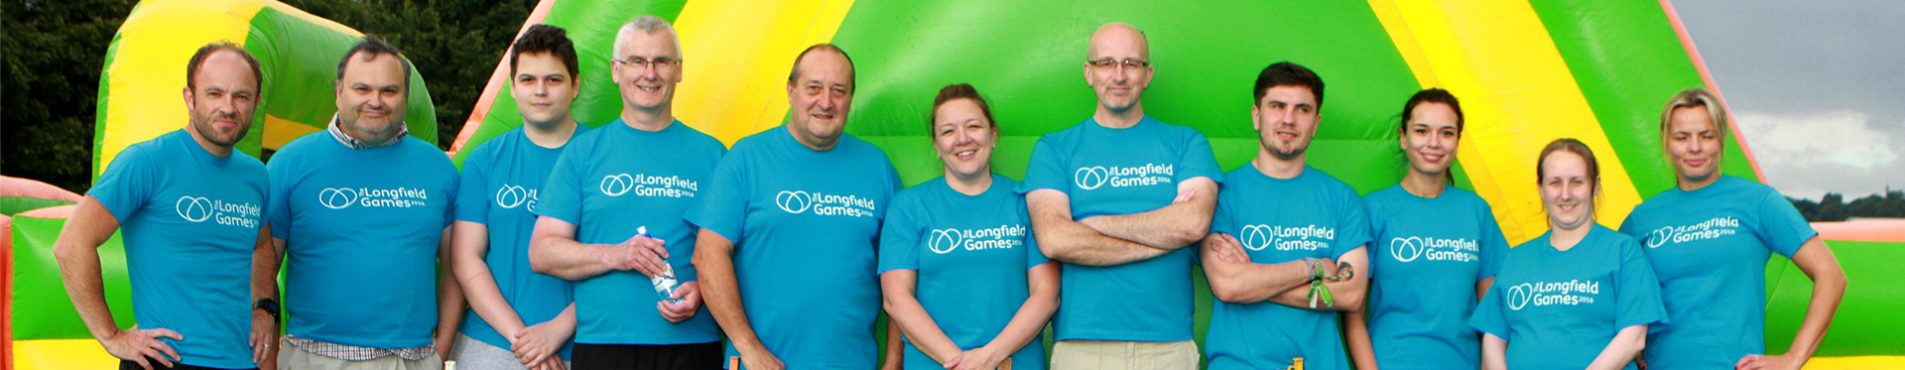 Team of Longfield corporate fundraisers